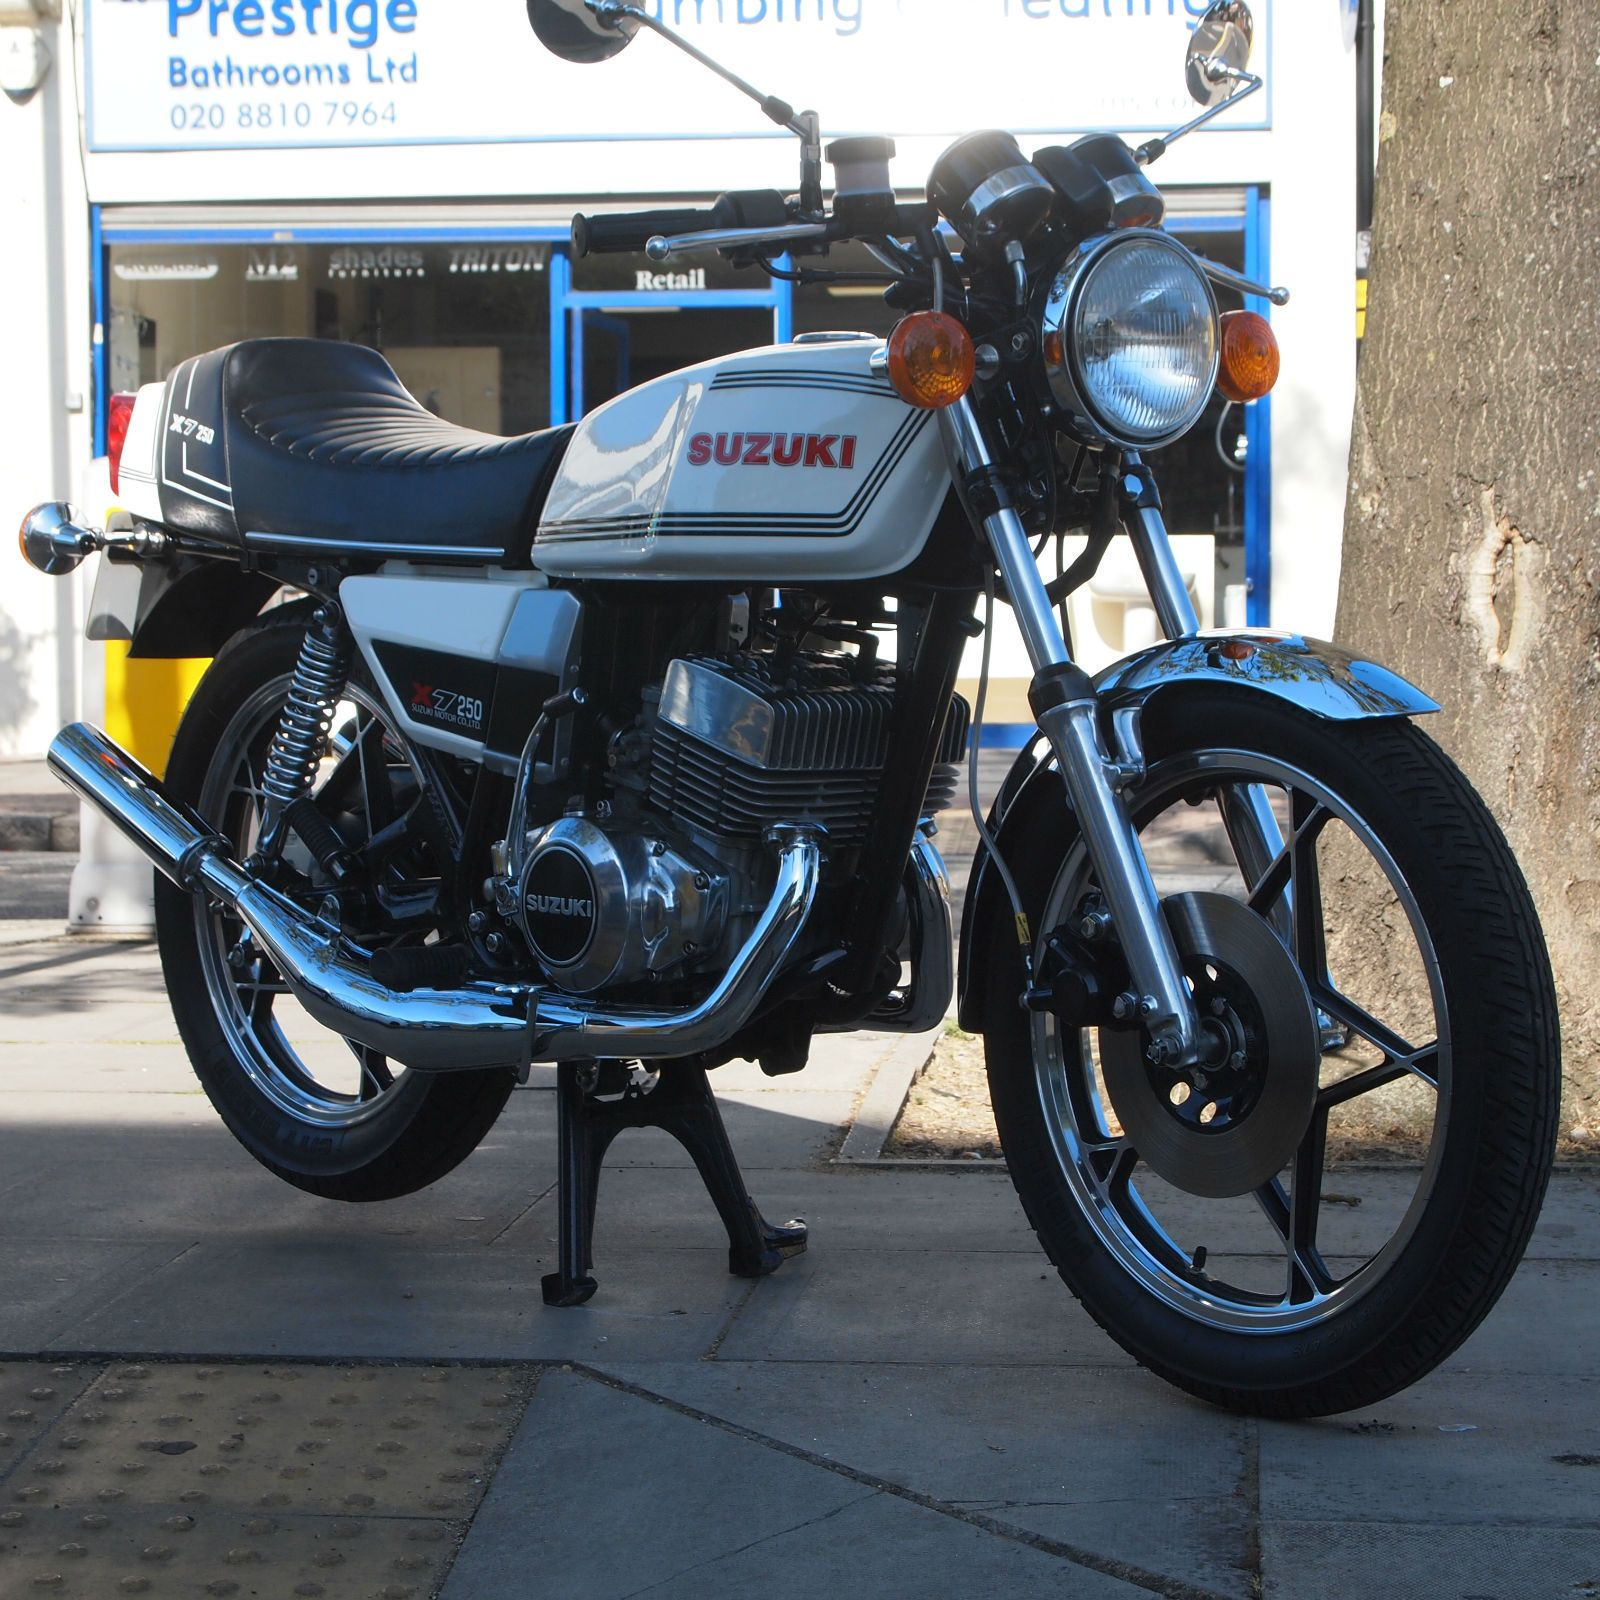 1980 Suzuki X7 250 Classic Vintage RESERVED / SOLD TO DAVID